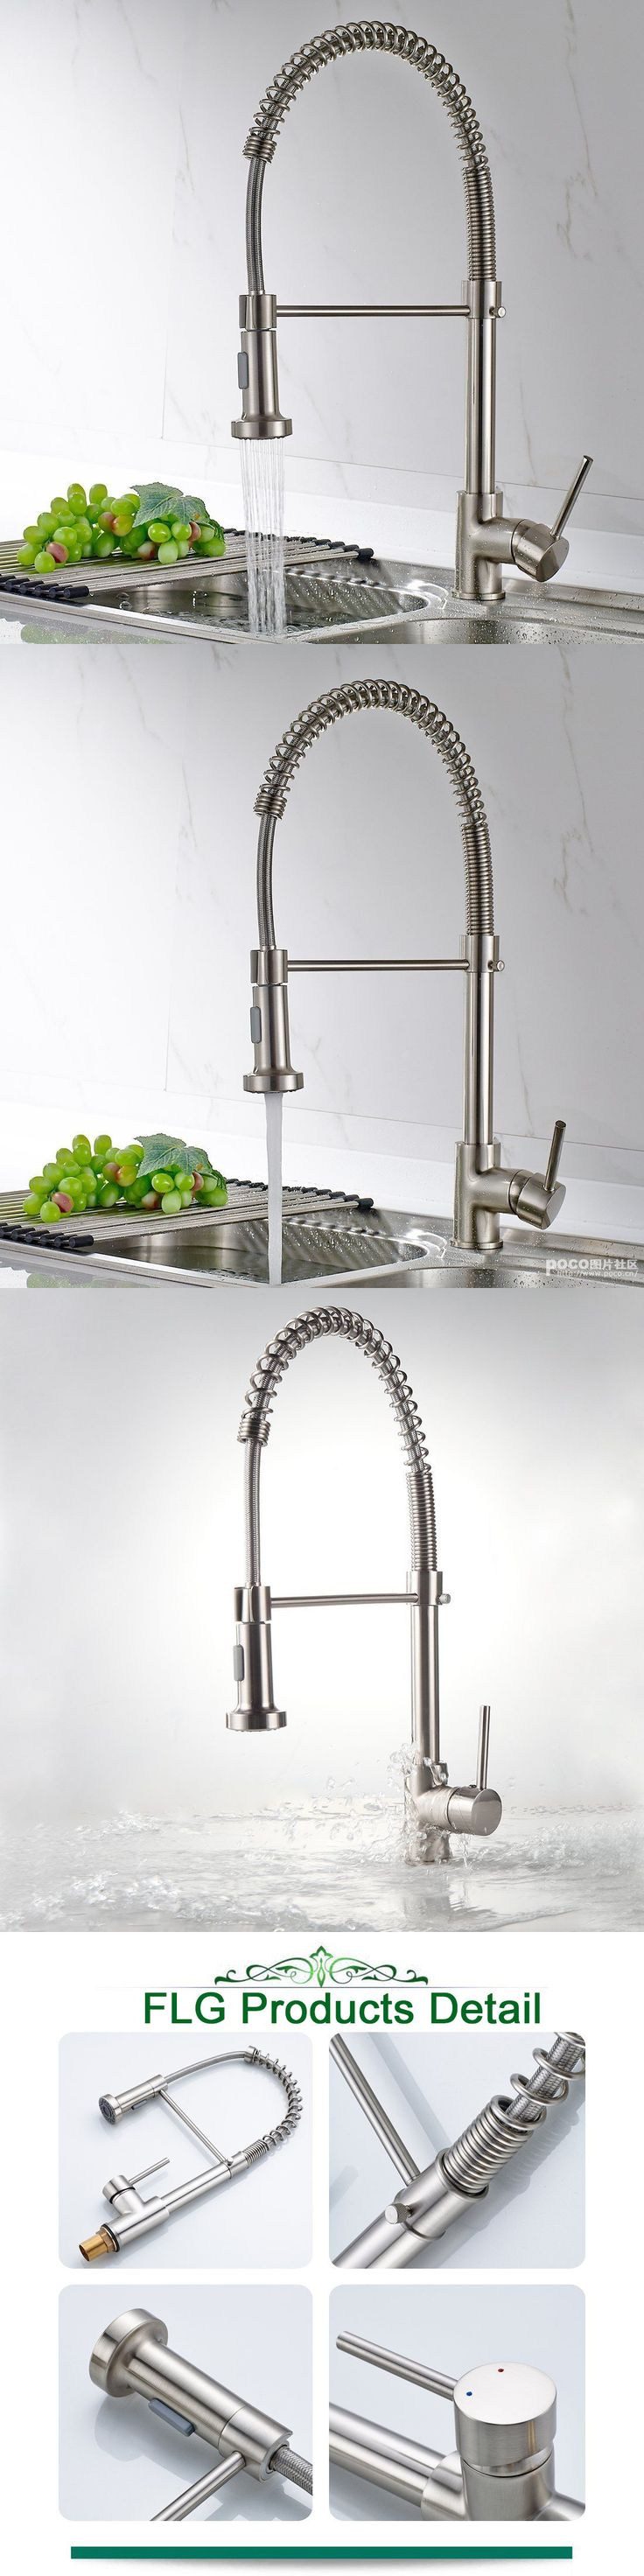 Bathroom sink faucet one hole double handle basin mixer tap ebay - Faucets 42024 Flg Kitchen Faucet Brushed Nickel Basin Sink Mixer Taps With Pull Out Sprayer